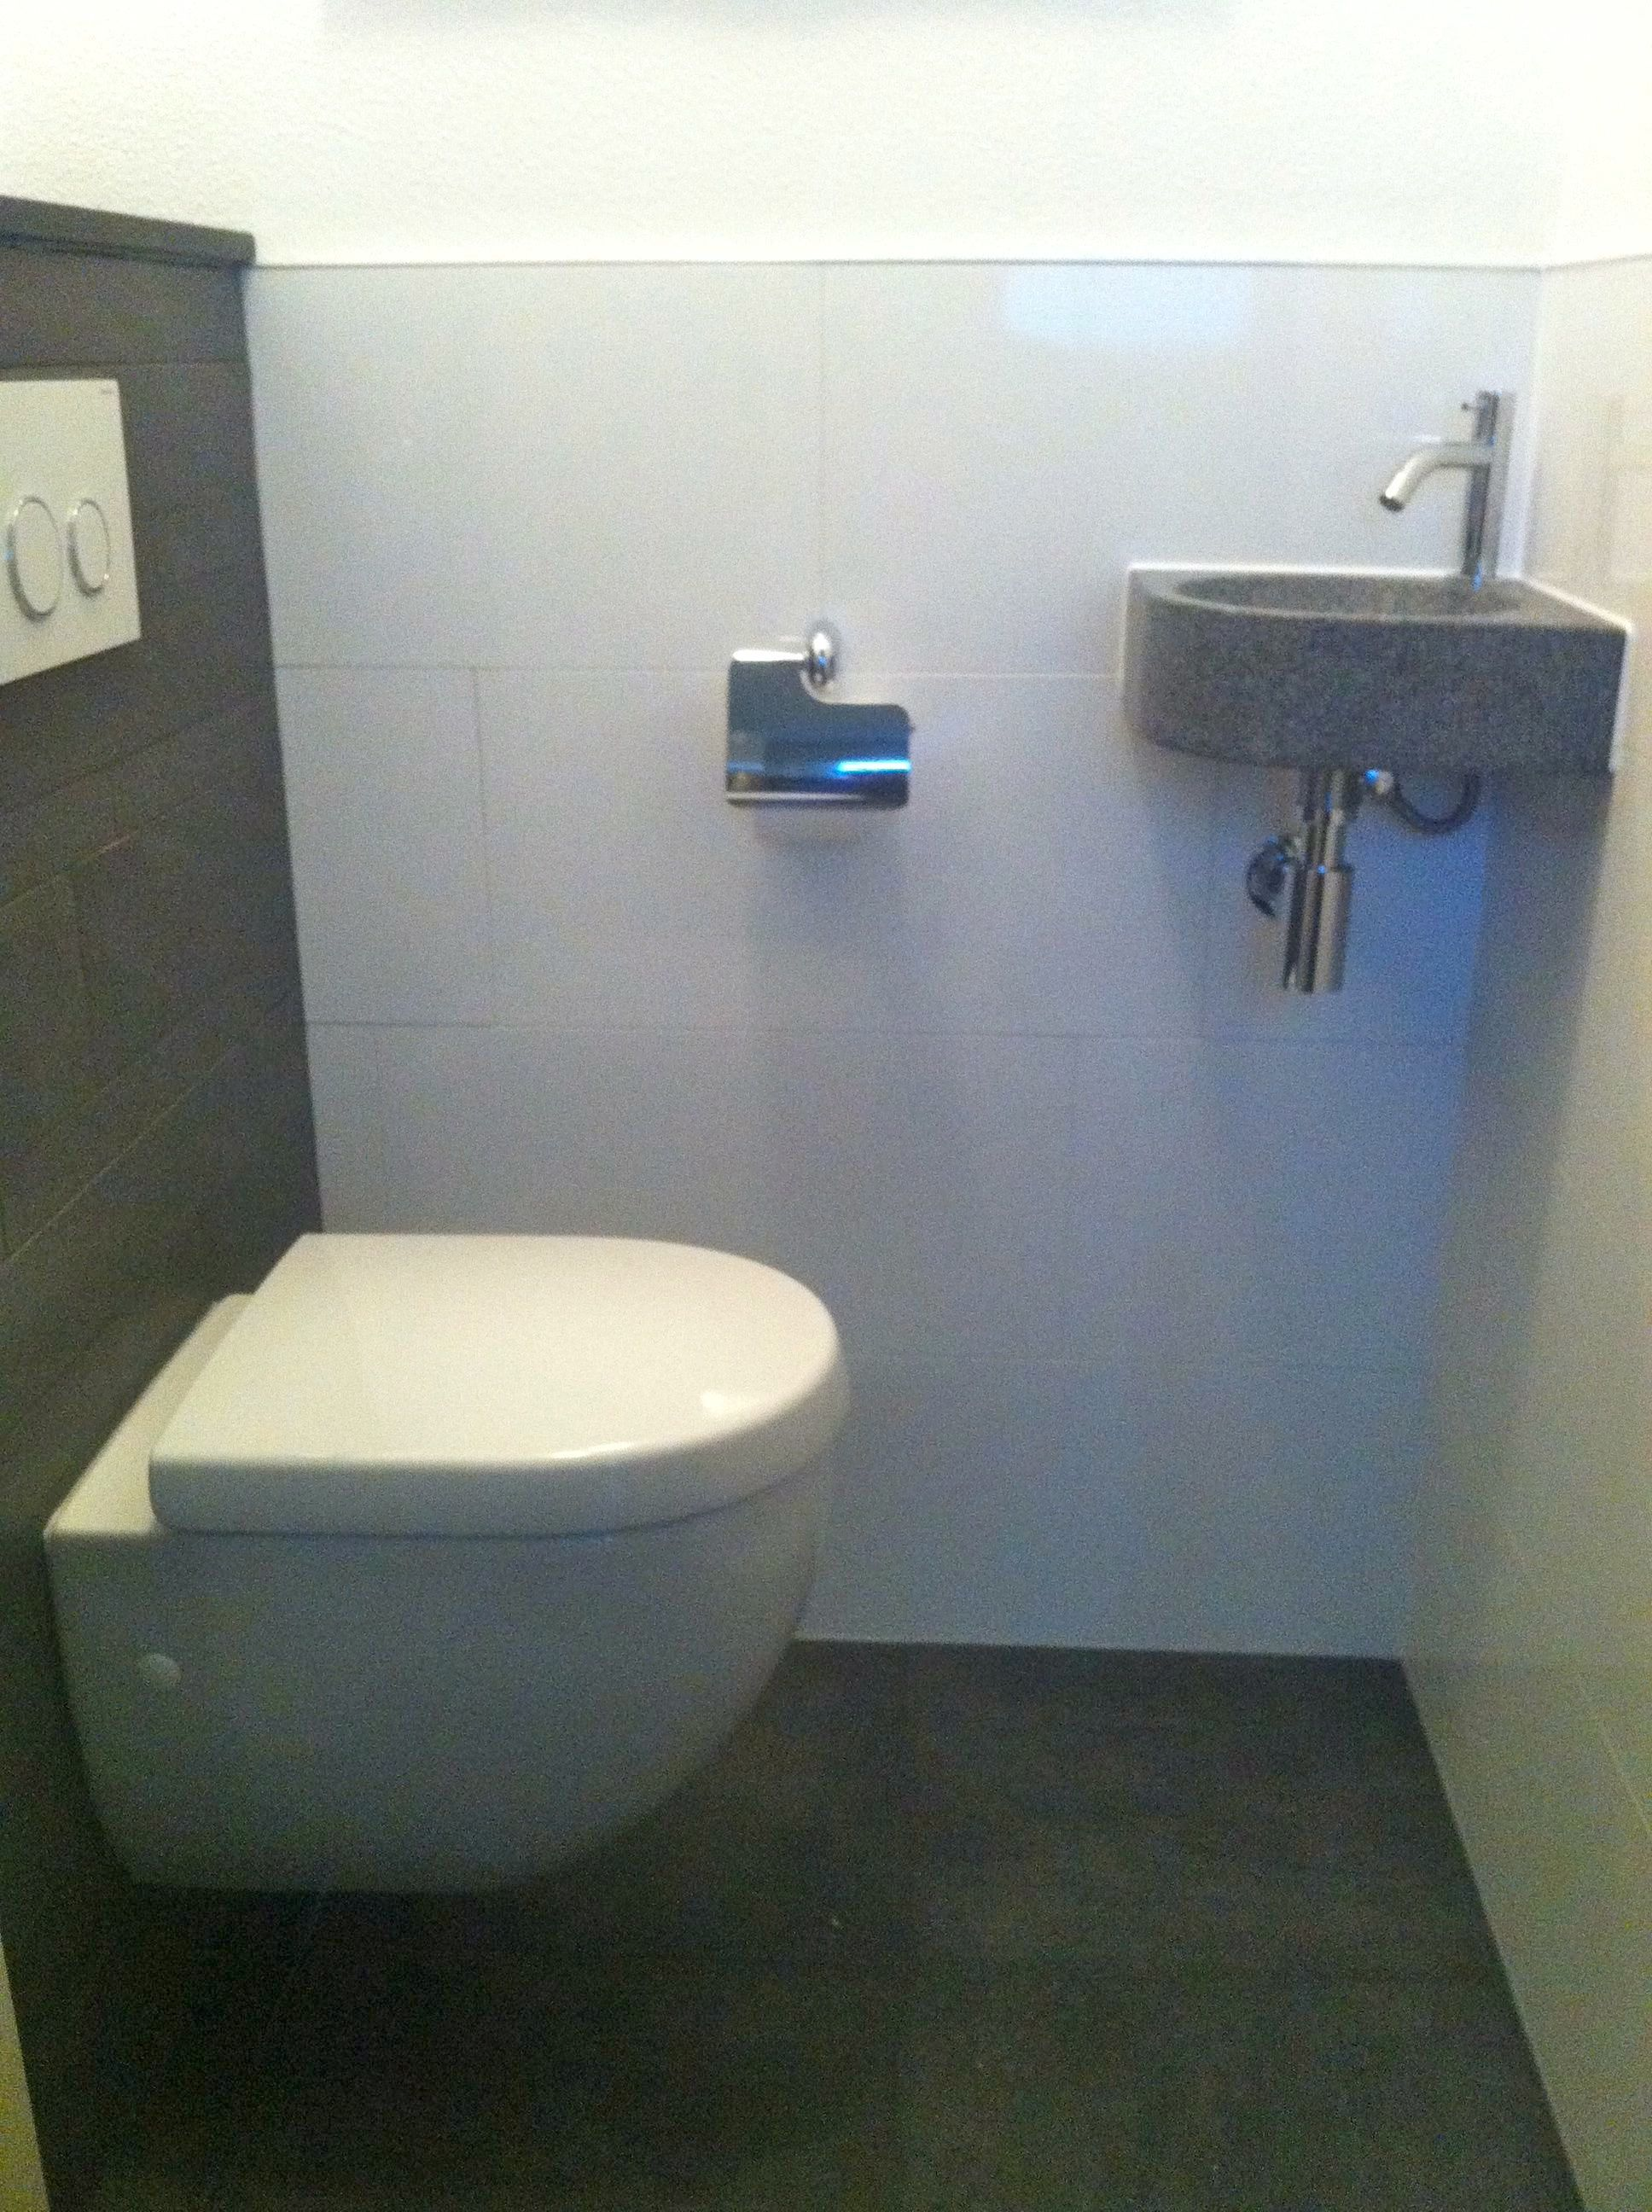 fonteintje toilet fontein wc marmer home inspirations toilet